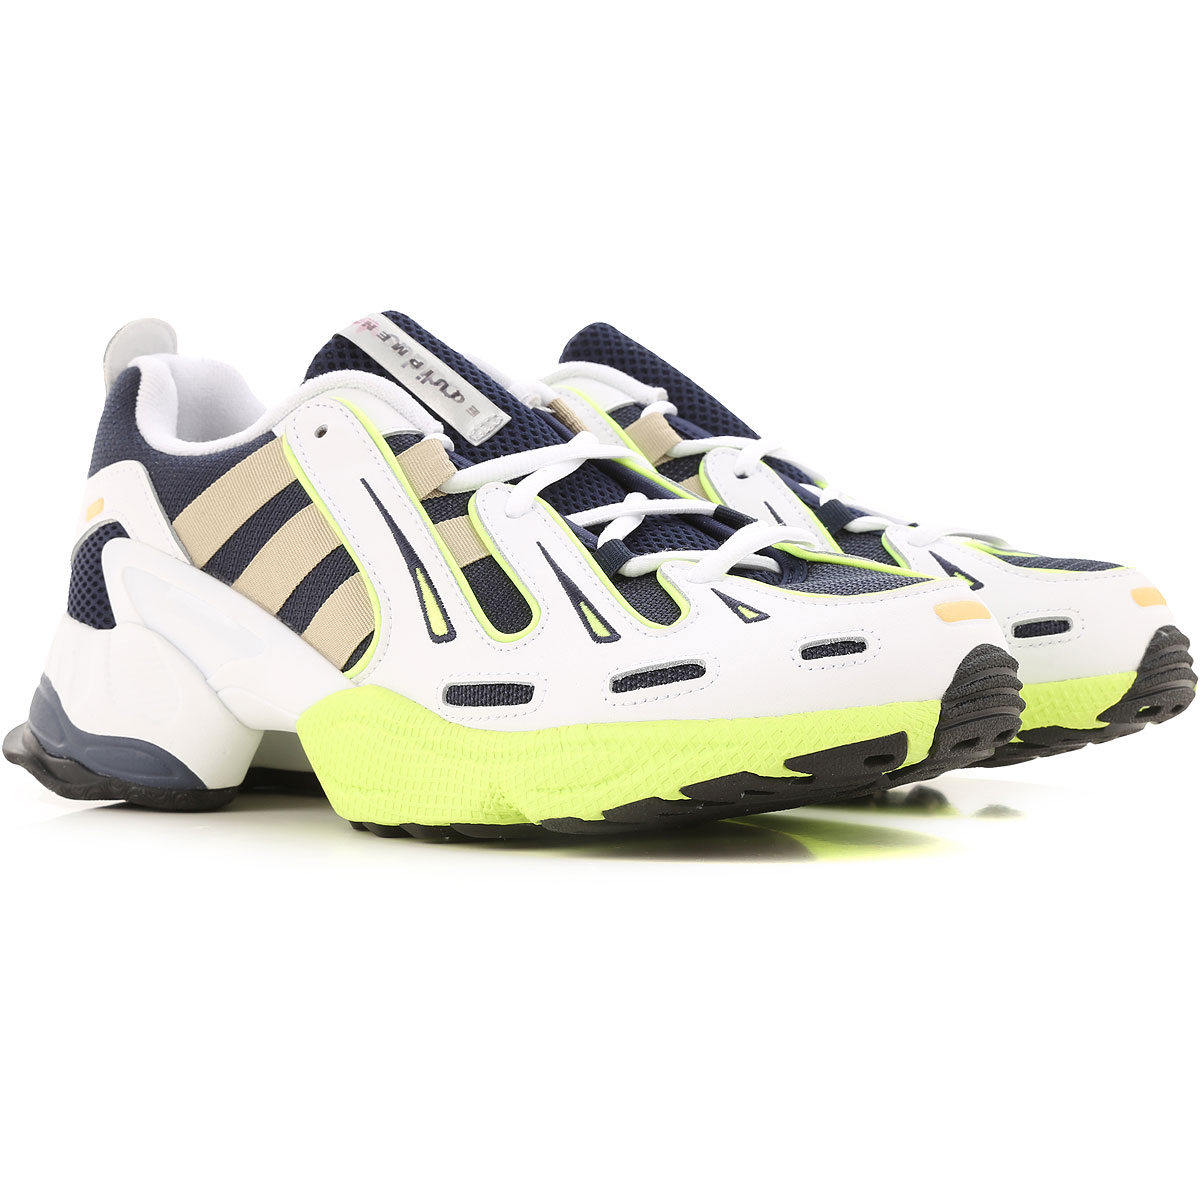 Adidas Sneakers for Men On Sale in Outlet, White, Leather, 2019, 7 7.5